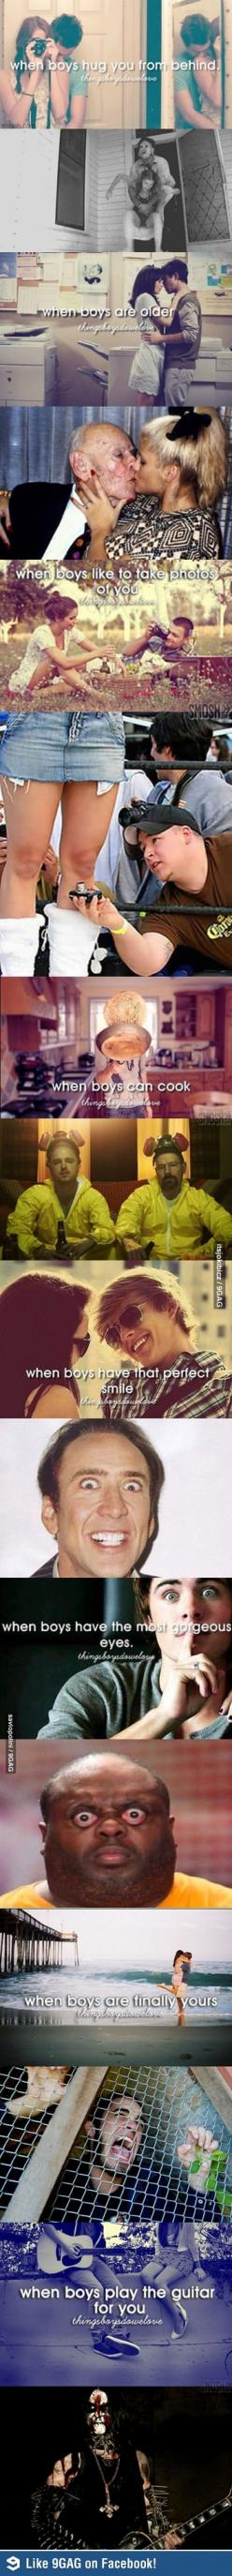 Lol: Giggle, Real Life, Boys Lol, Funny Stuff, Just Girly Things, So Funny, Died Laughing, Eye